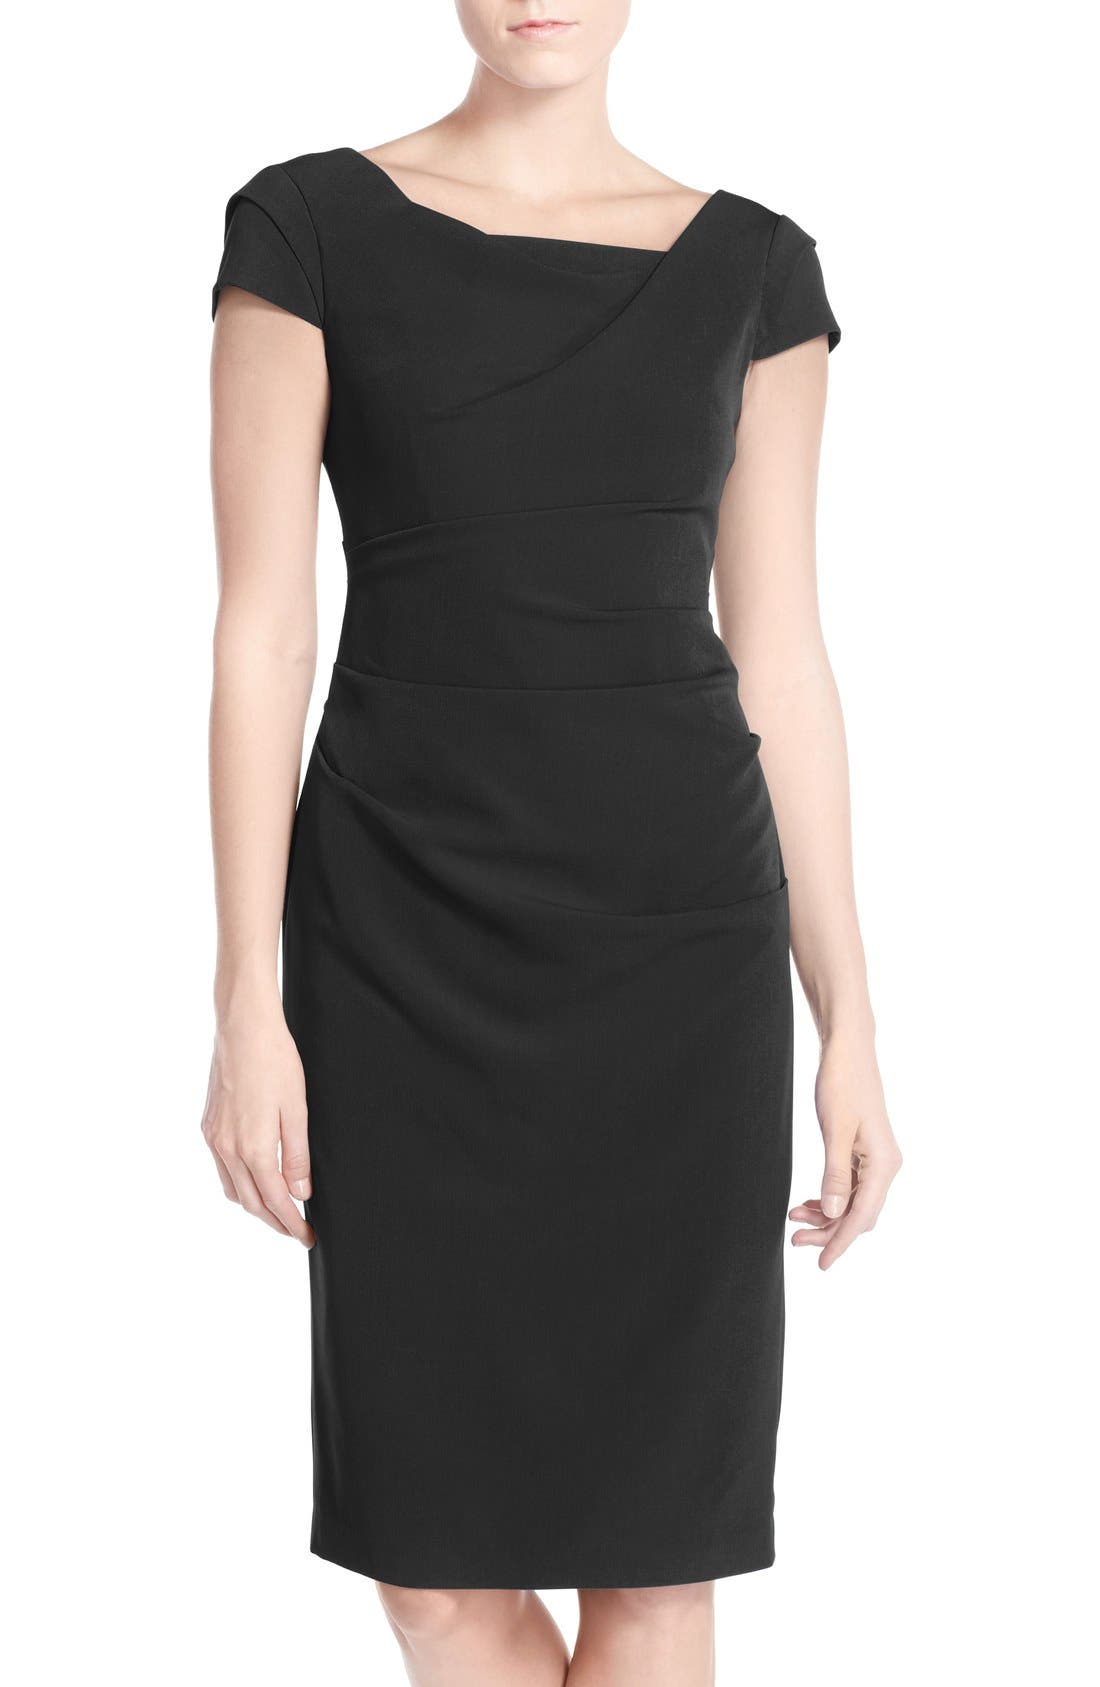 Alternate Image 1 Selected - Adrianna Papell Ruched Matte Stretch Crepe Sheath Dress